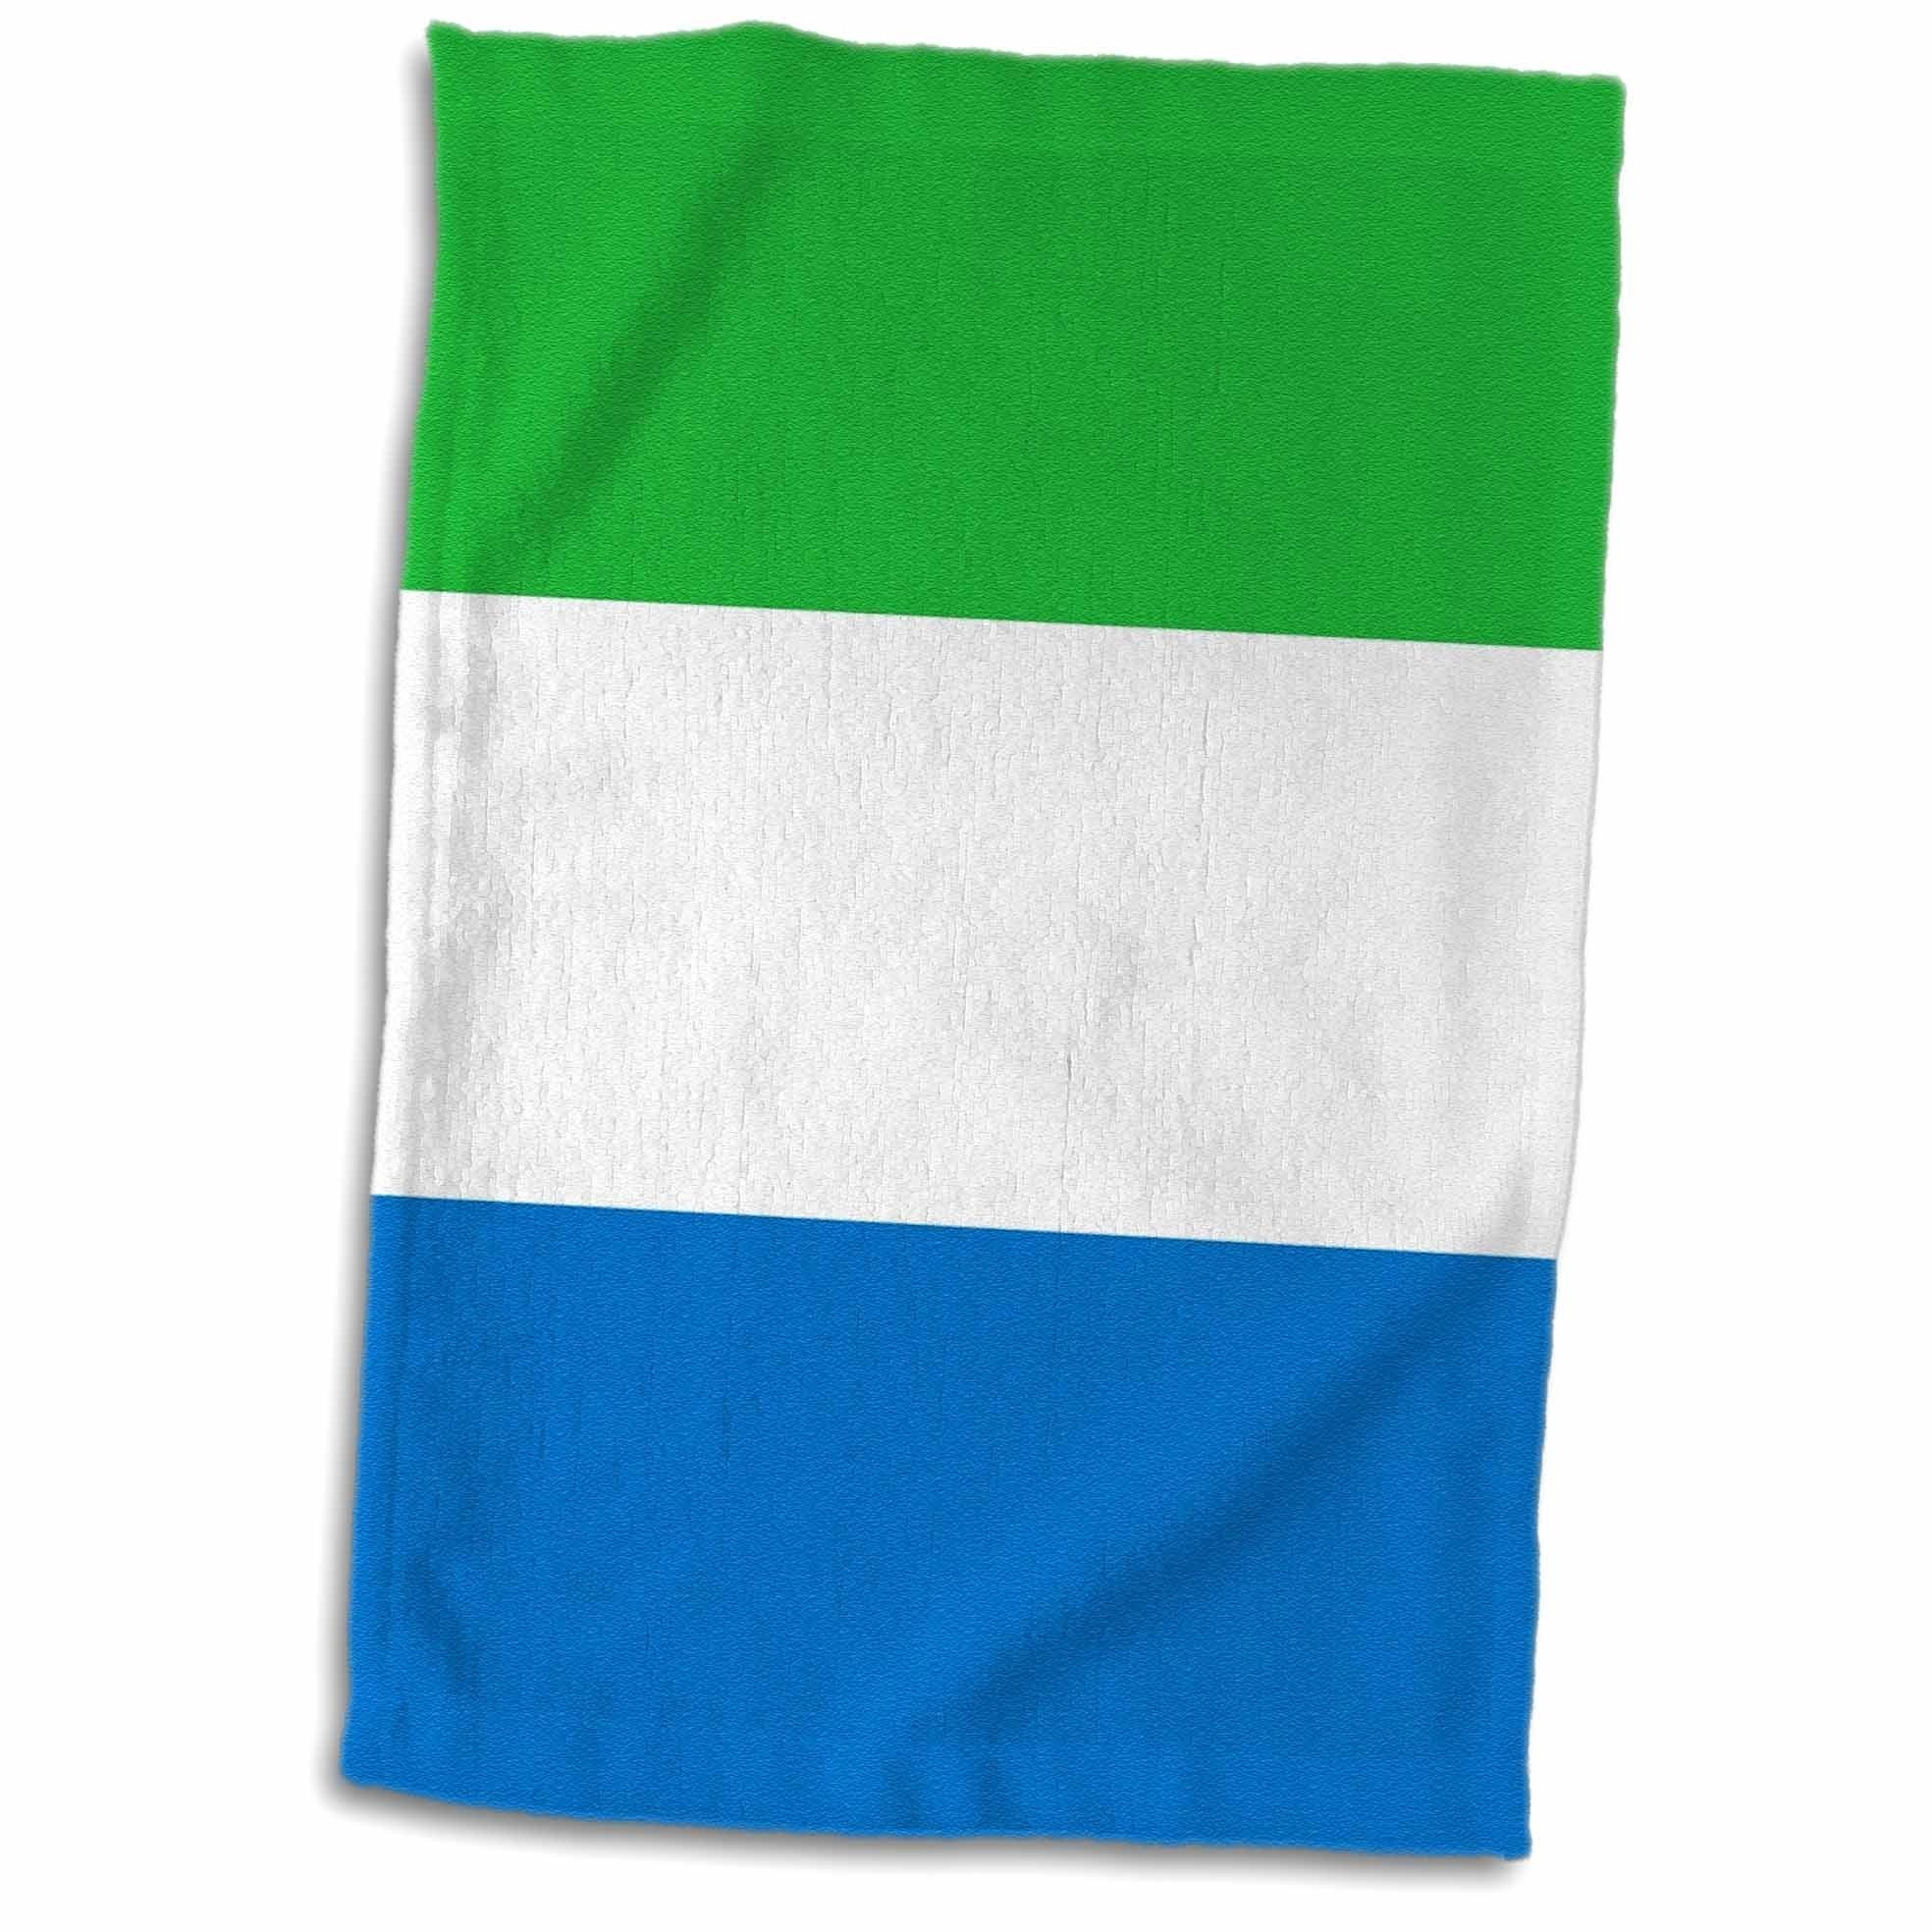 3D Rose Flag of Sierra Leone - Green White Blue Horizontal Stripes - West Africa Country African World Towel, 15'' x 22'', Multicolor